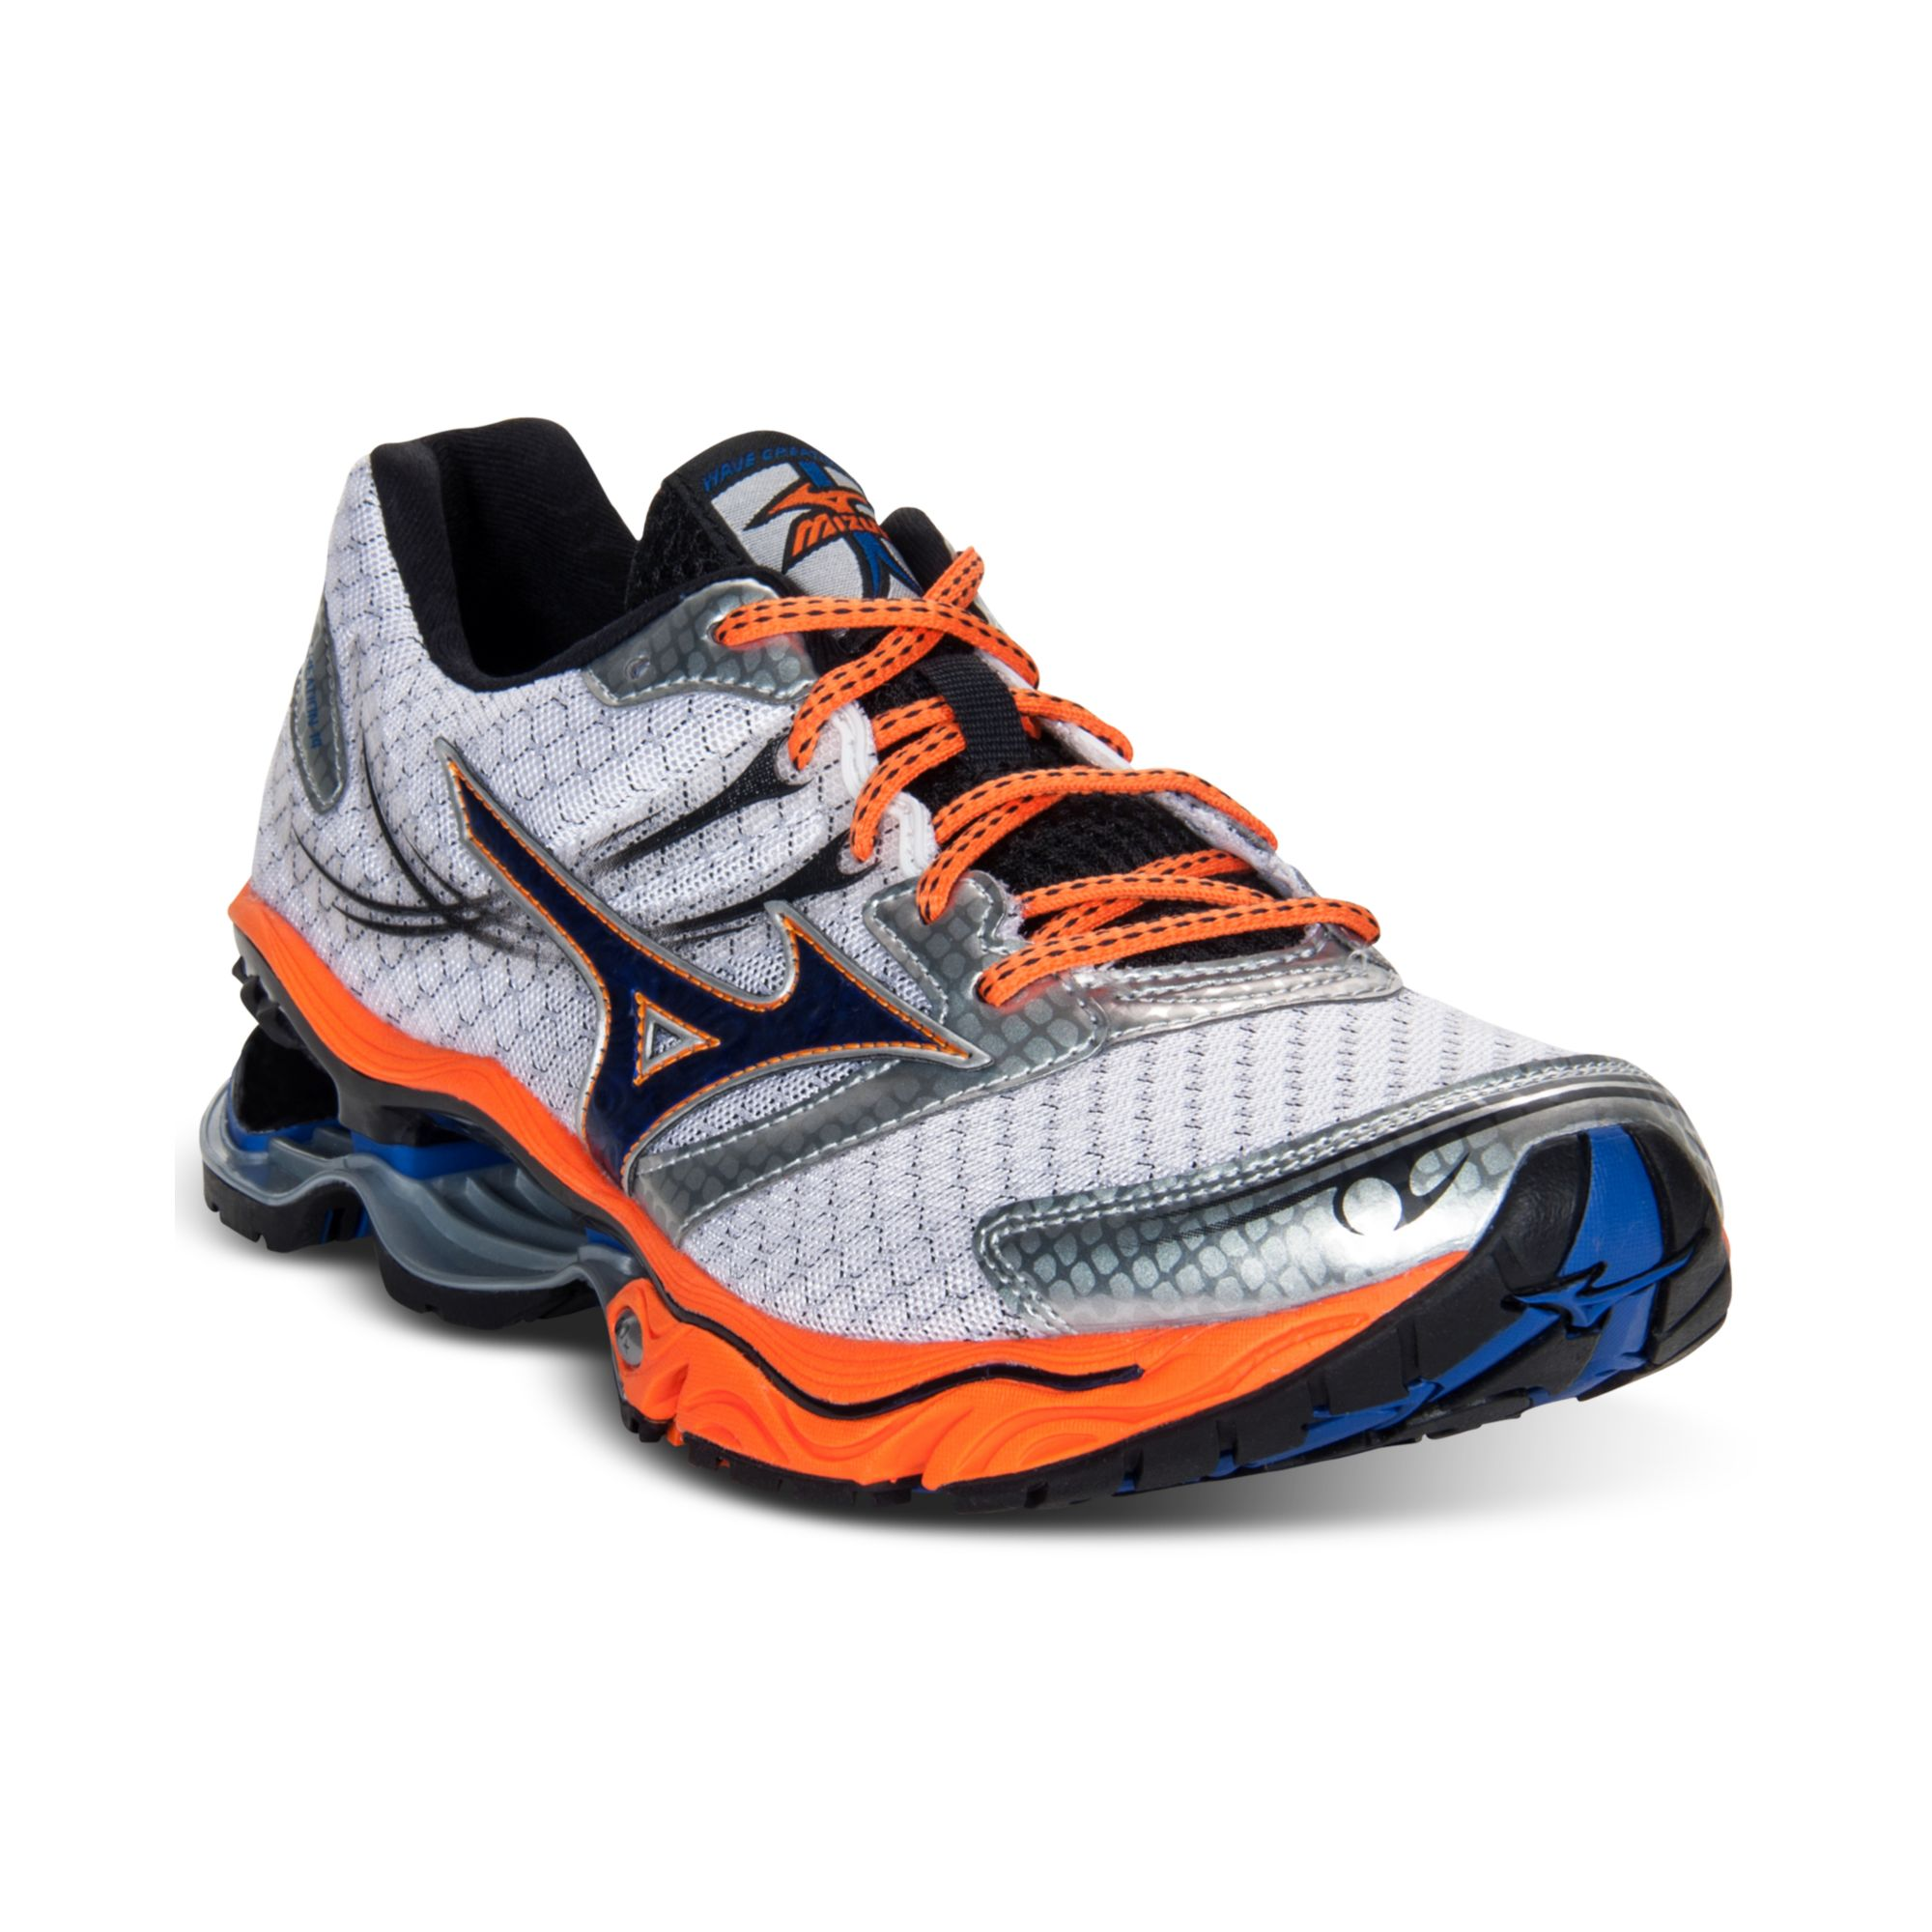 6a4cf8f755 Lyst - Mizuno Wave Creation 14 Running Sneakers in Blue for Men